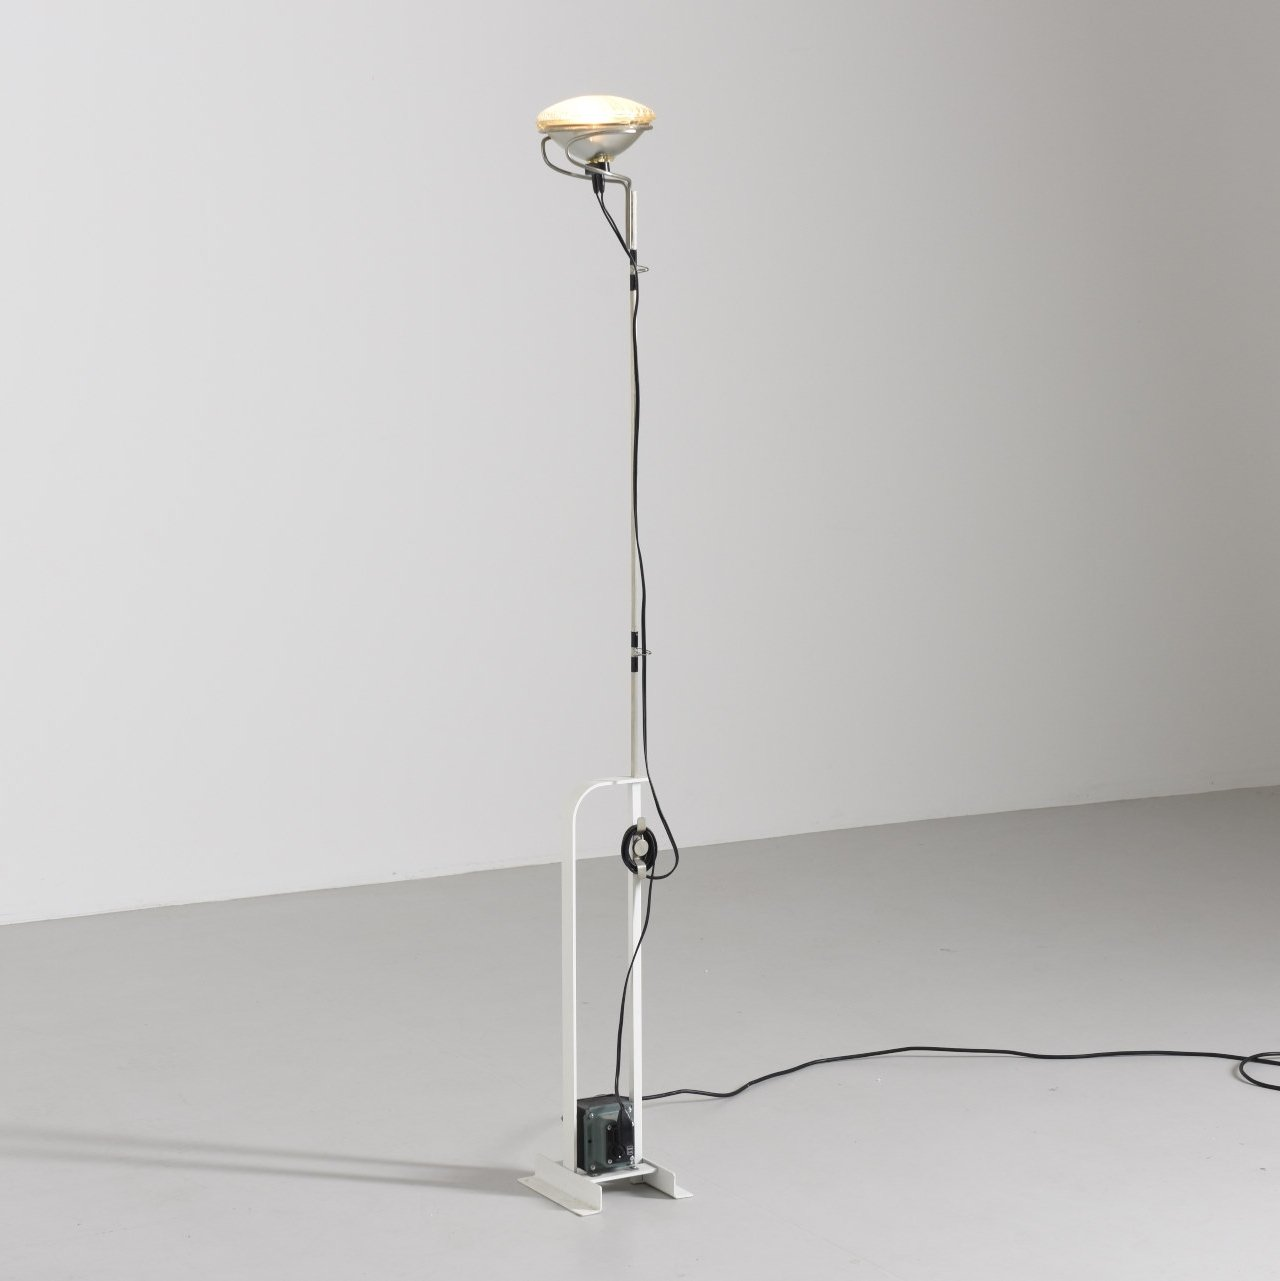 4 x toio floor lamp by achille giacomo castiglioni pier giacomo 4 x toio floor lamp by achille giacomo castiglioni pier giacomo castiglioni for flos 1970s mozeypictures Choice Image